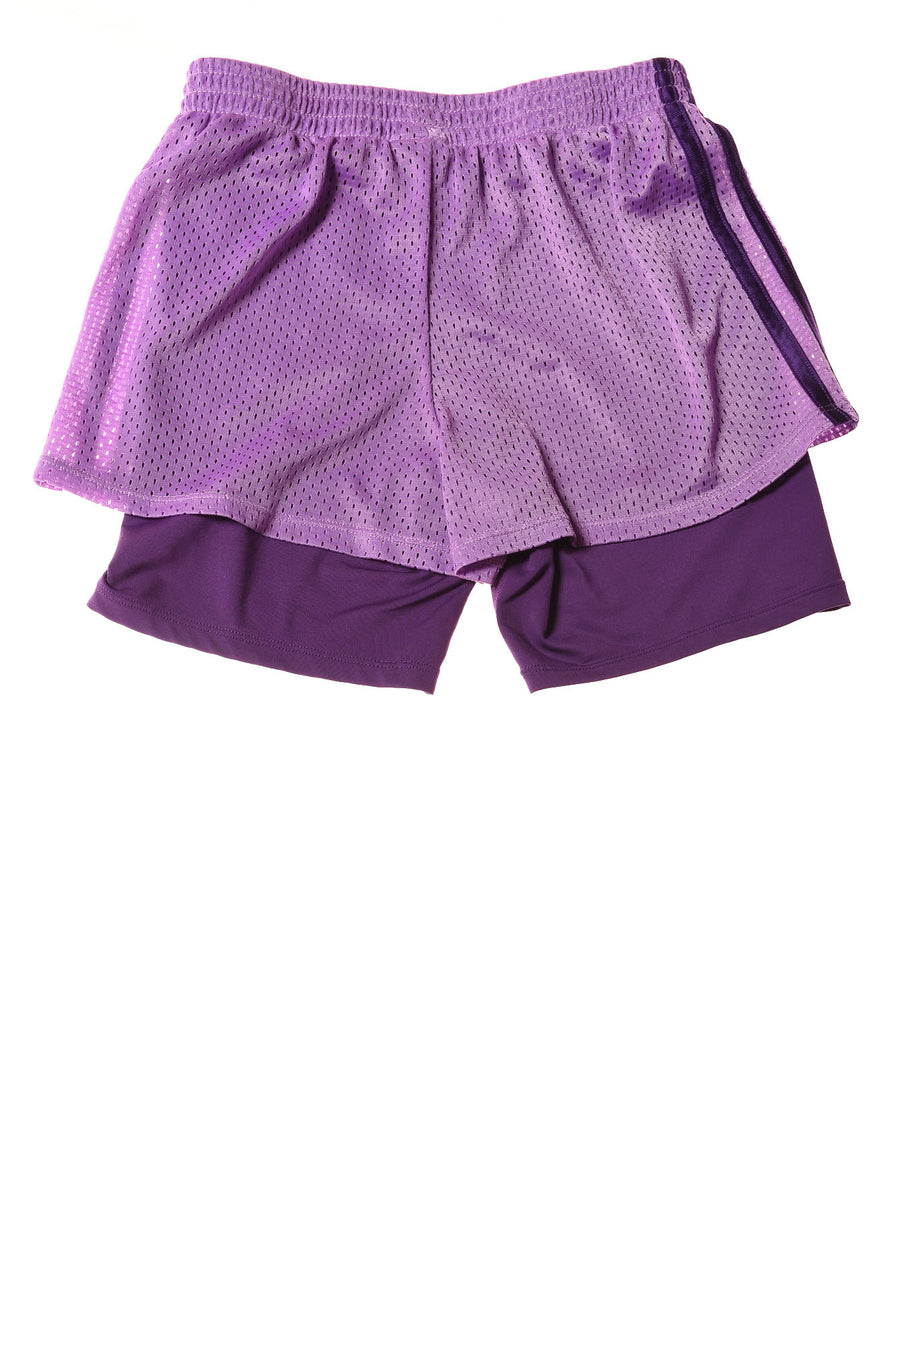 USED Champion Girl's Shorts 10-12 Purple